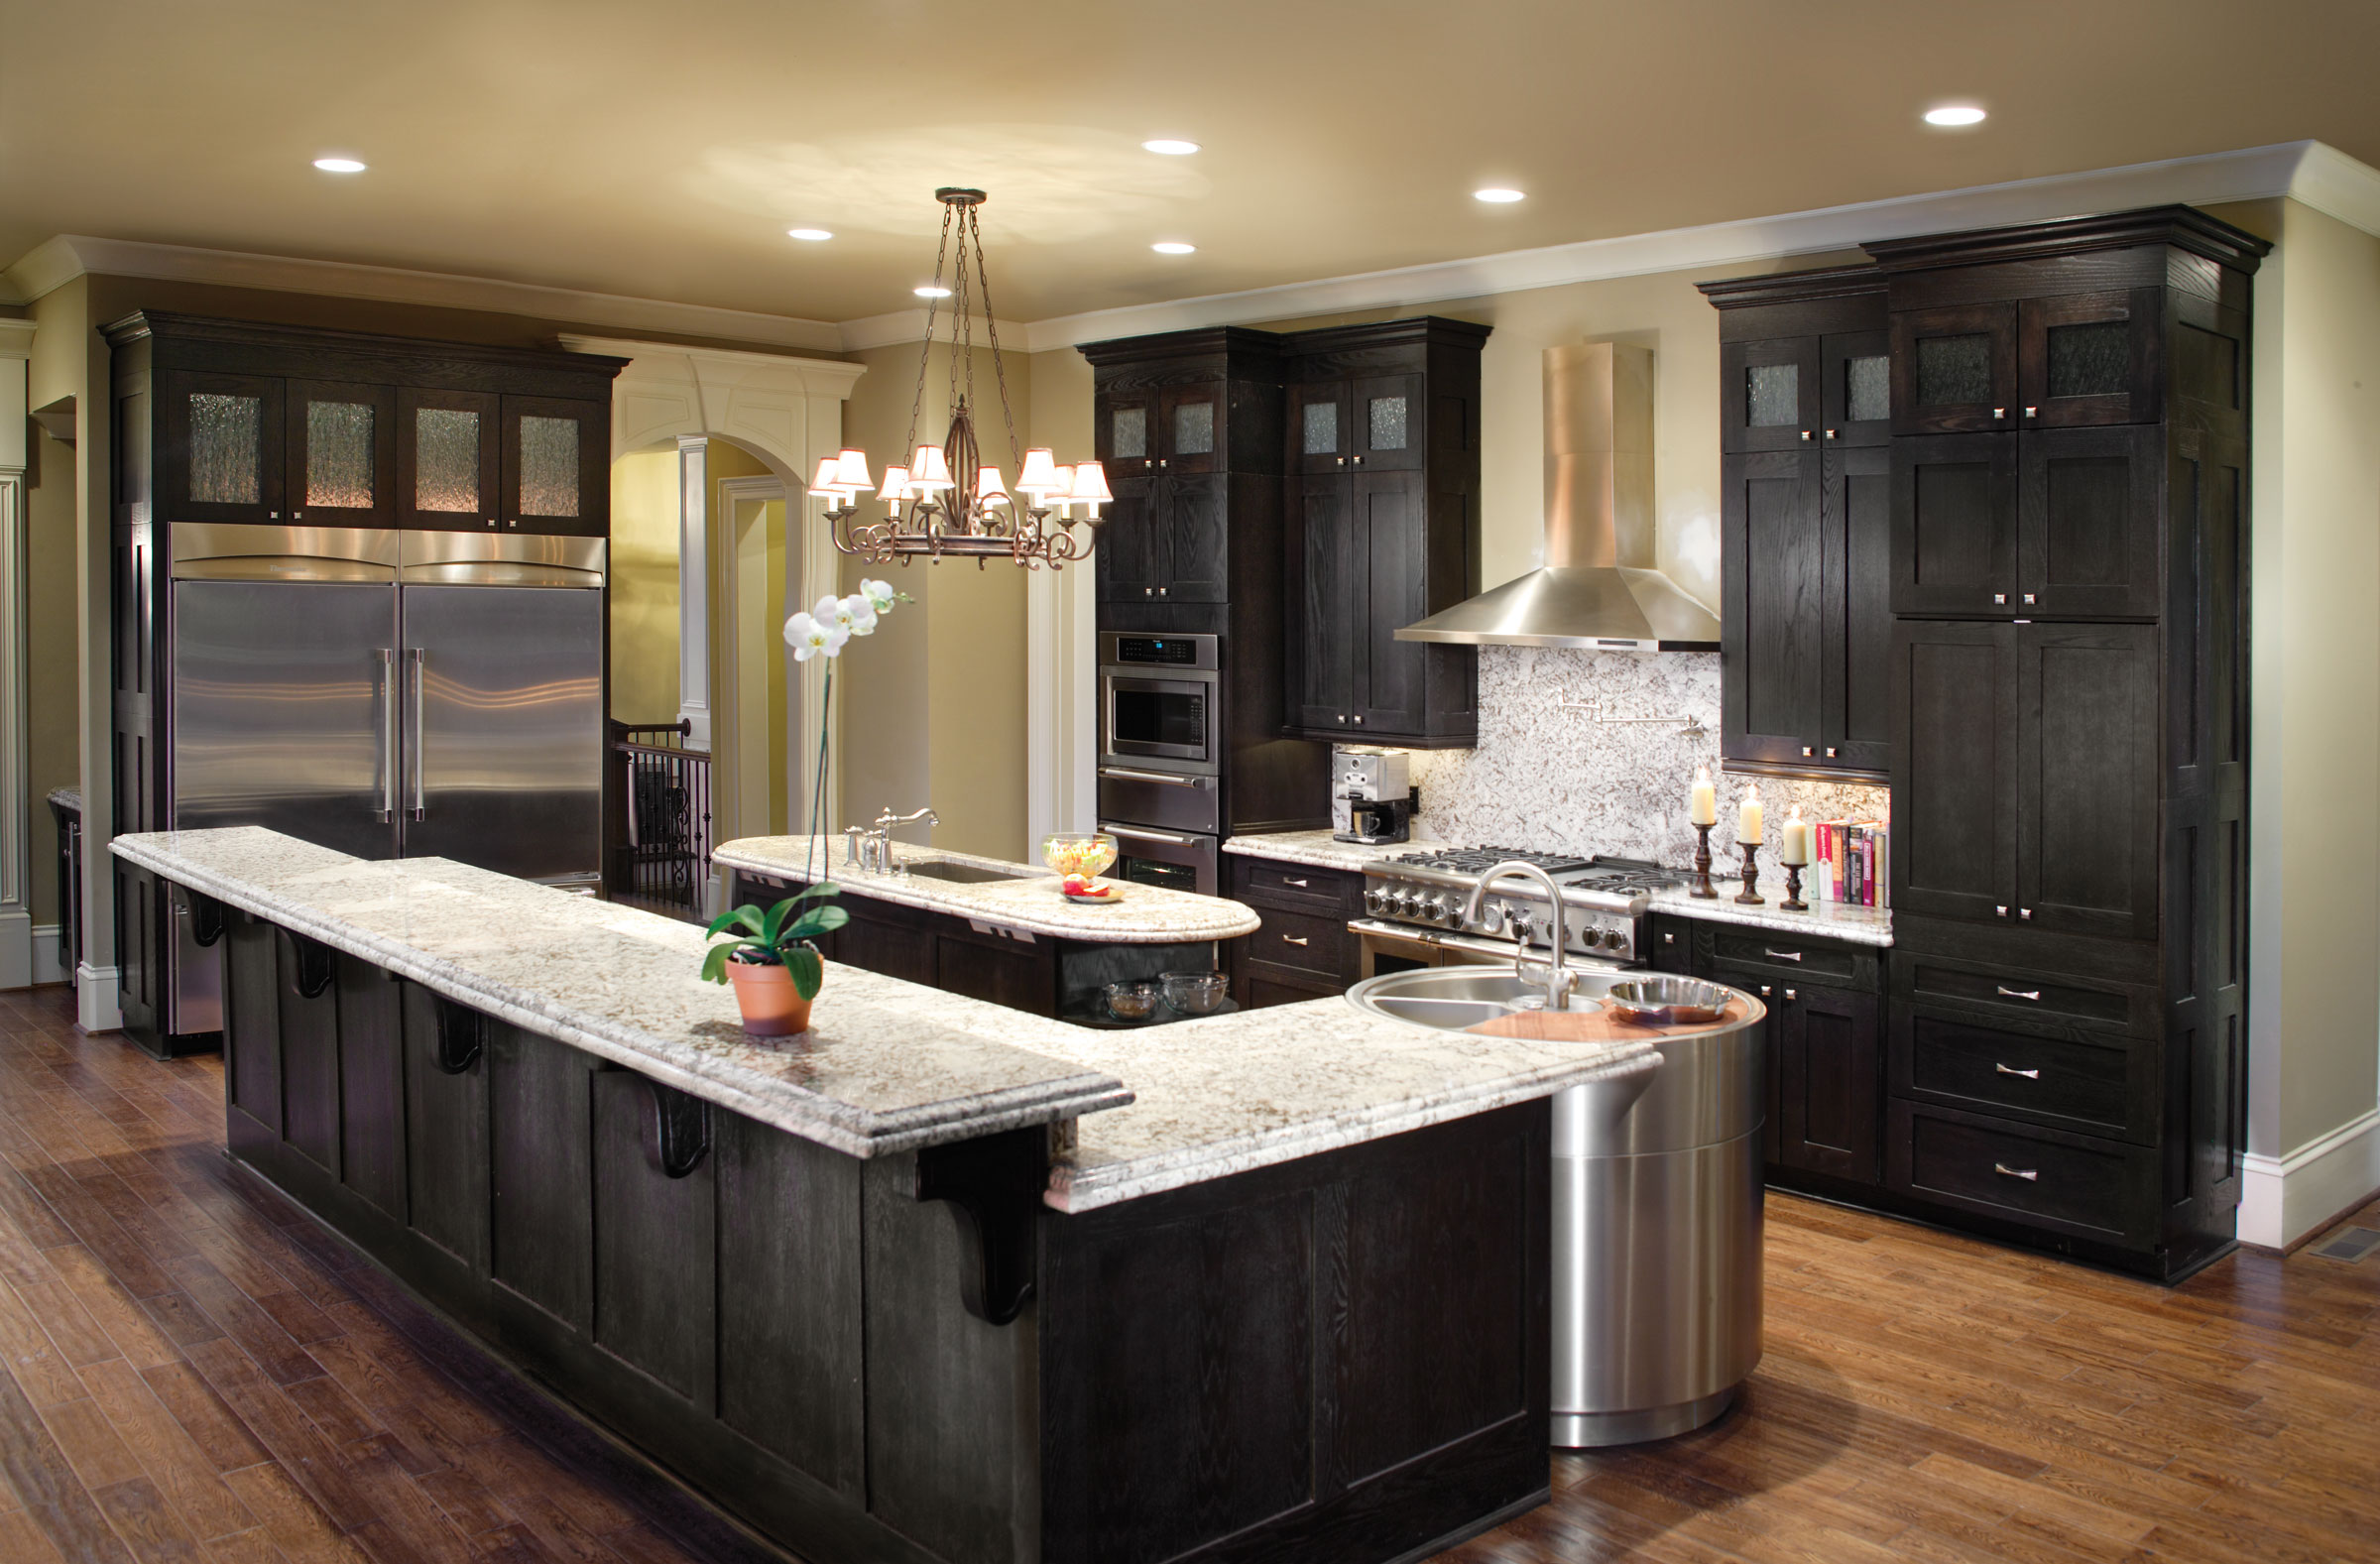 custom kitchen bathroom cabinets company in phoenix az cabinet